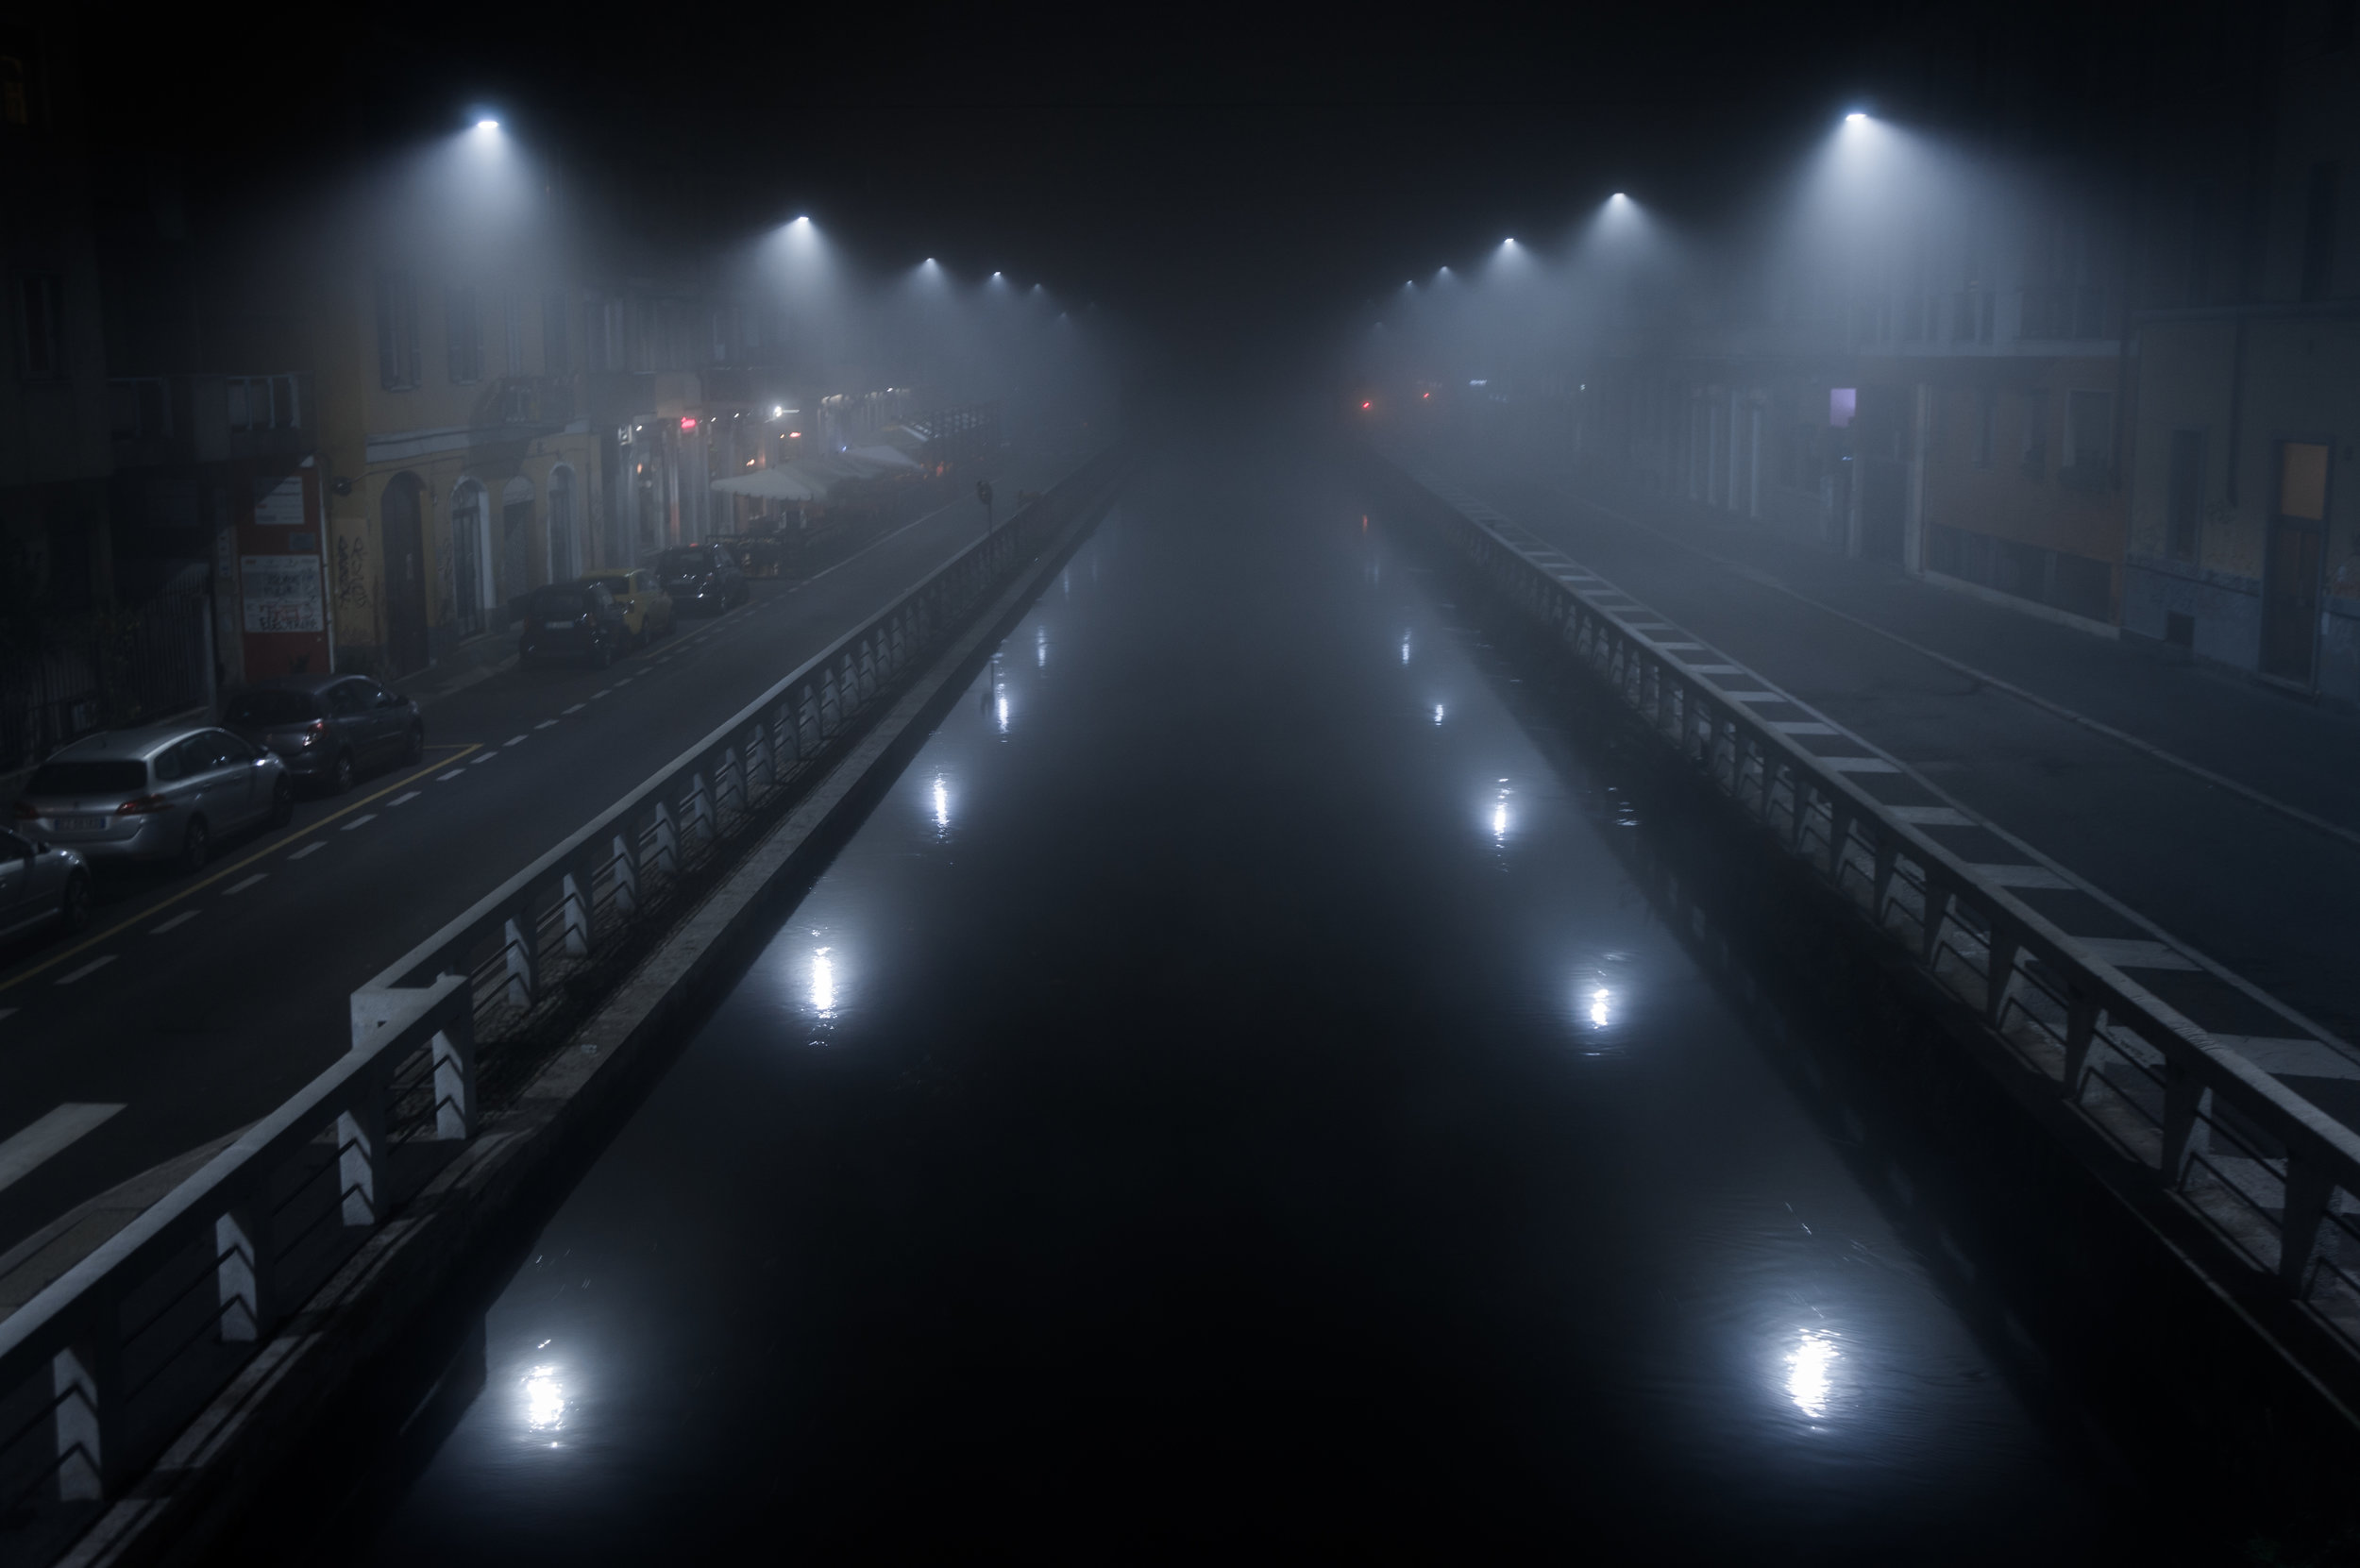 Navigli at midnight.